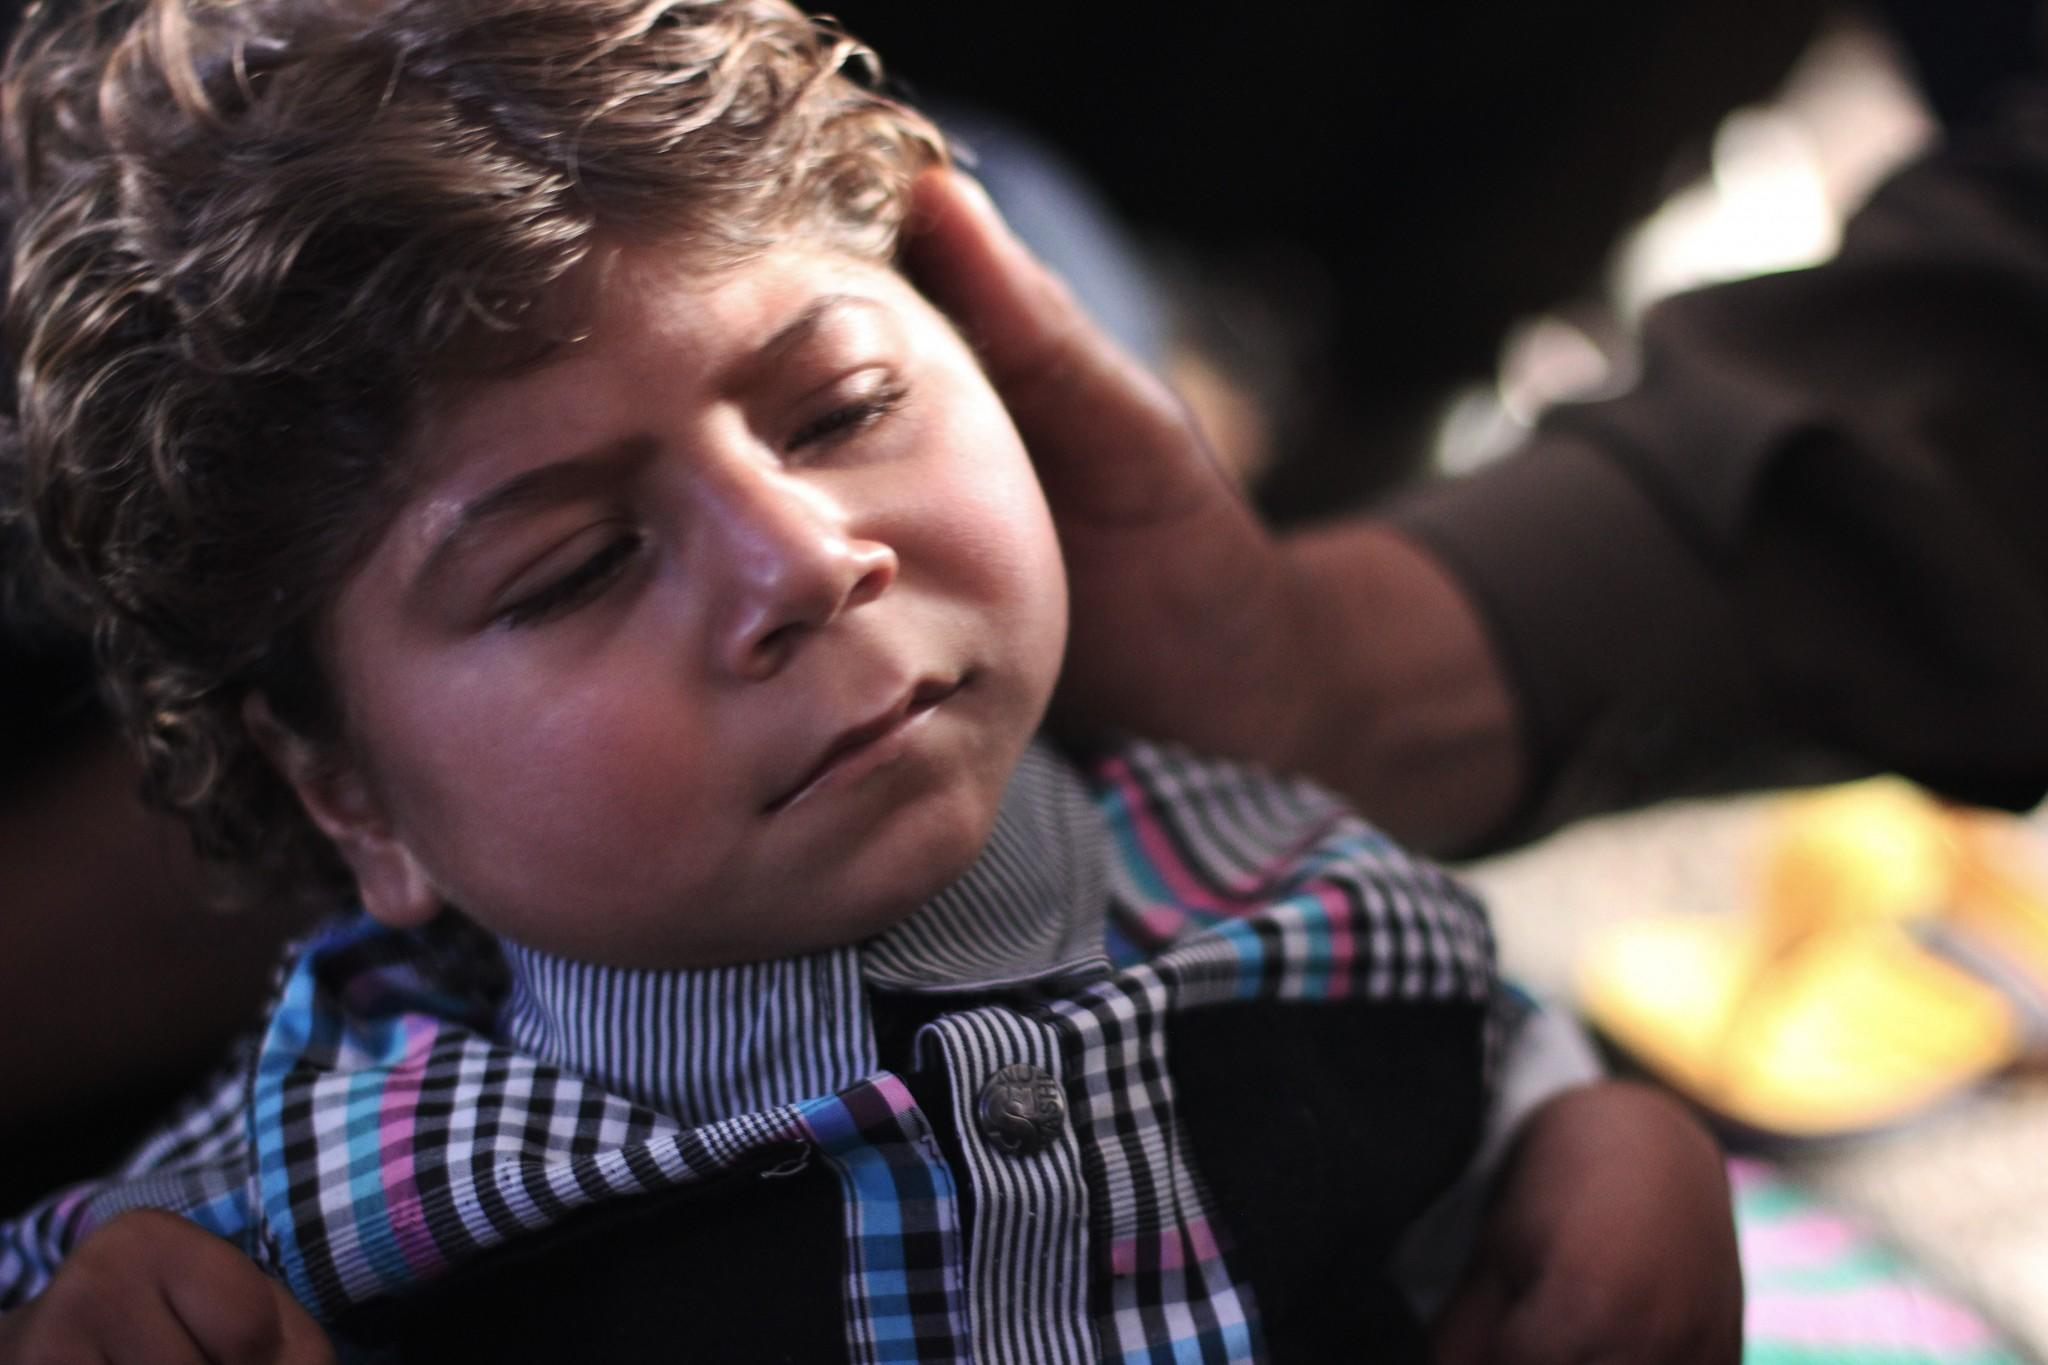 An internally displaced boy with brain damage hasn't had medical attention in weeks